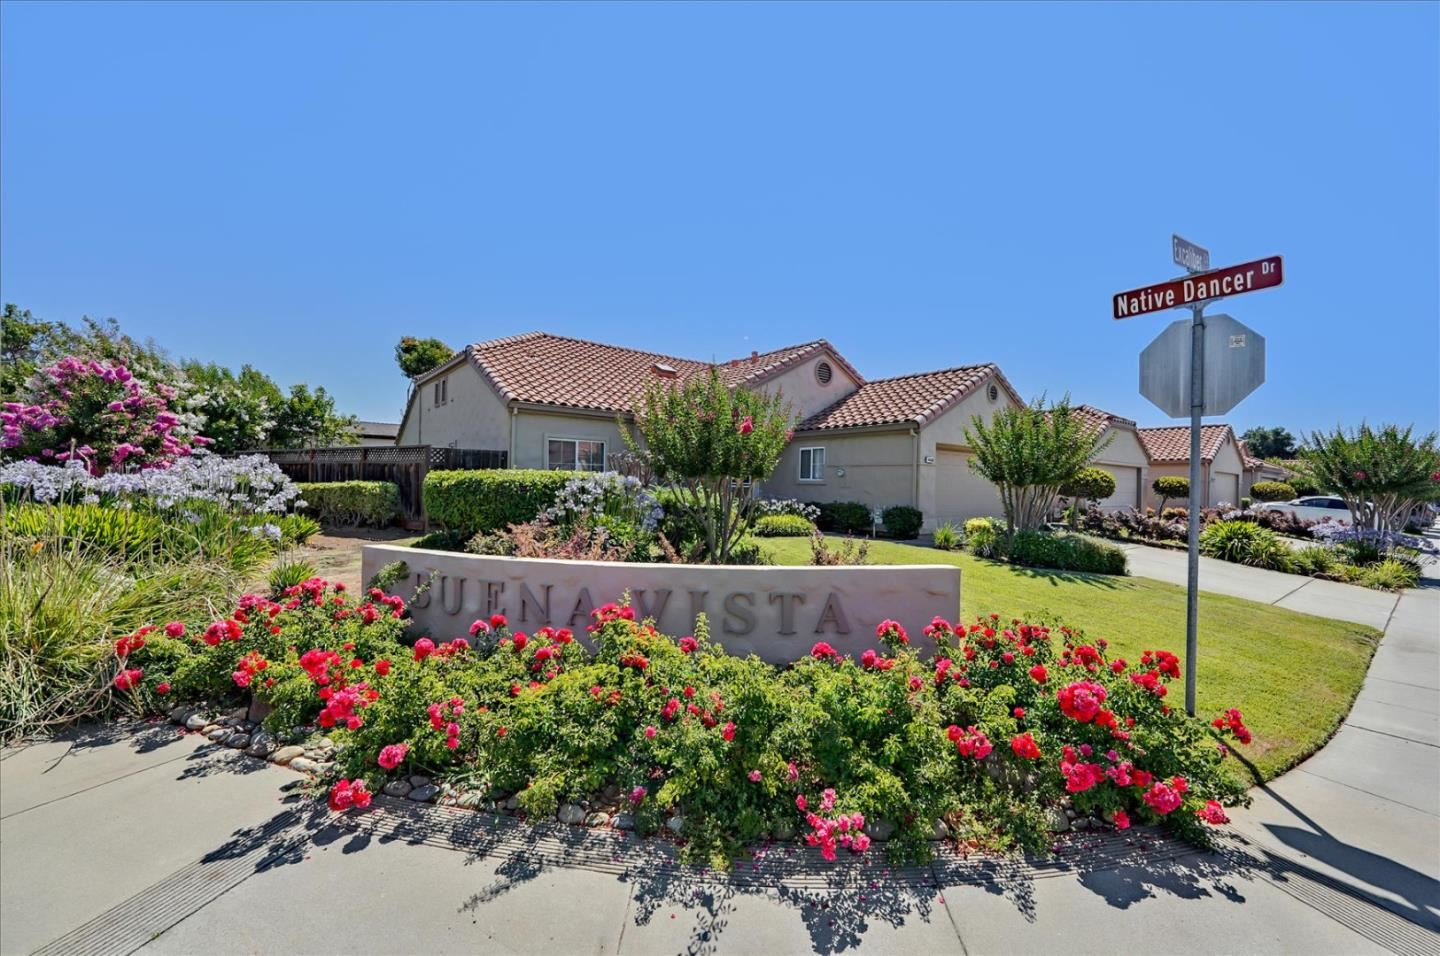 Photo for 14688 Excaliber Court, MORGAN HILL, CA 95037 (MLS # ML81854159)